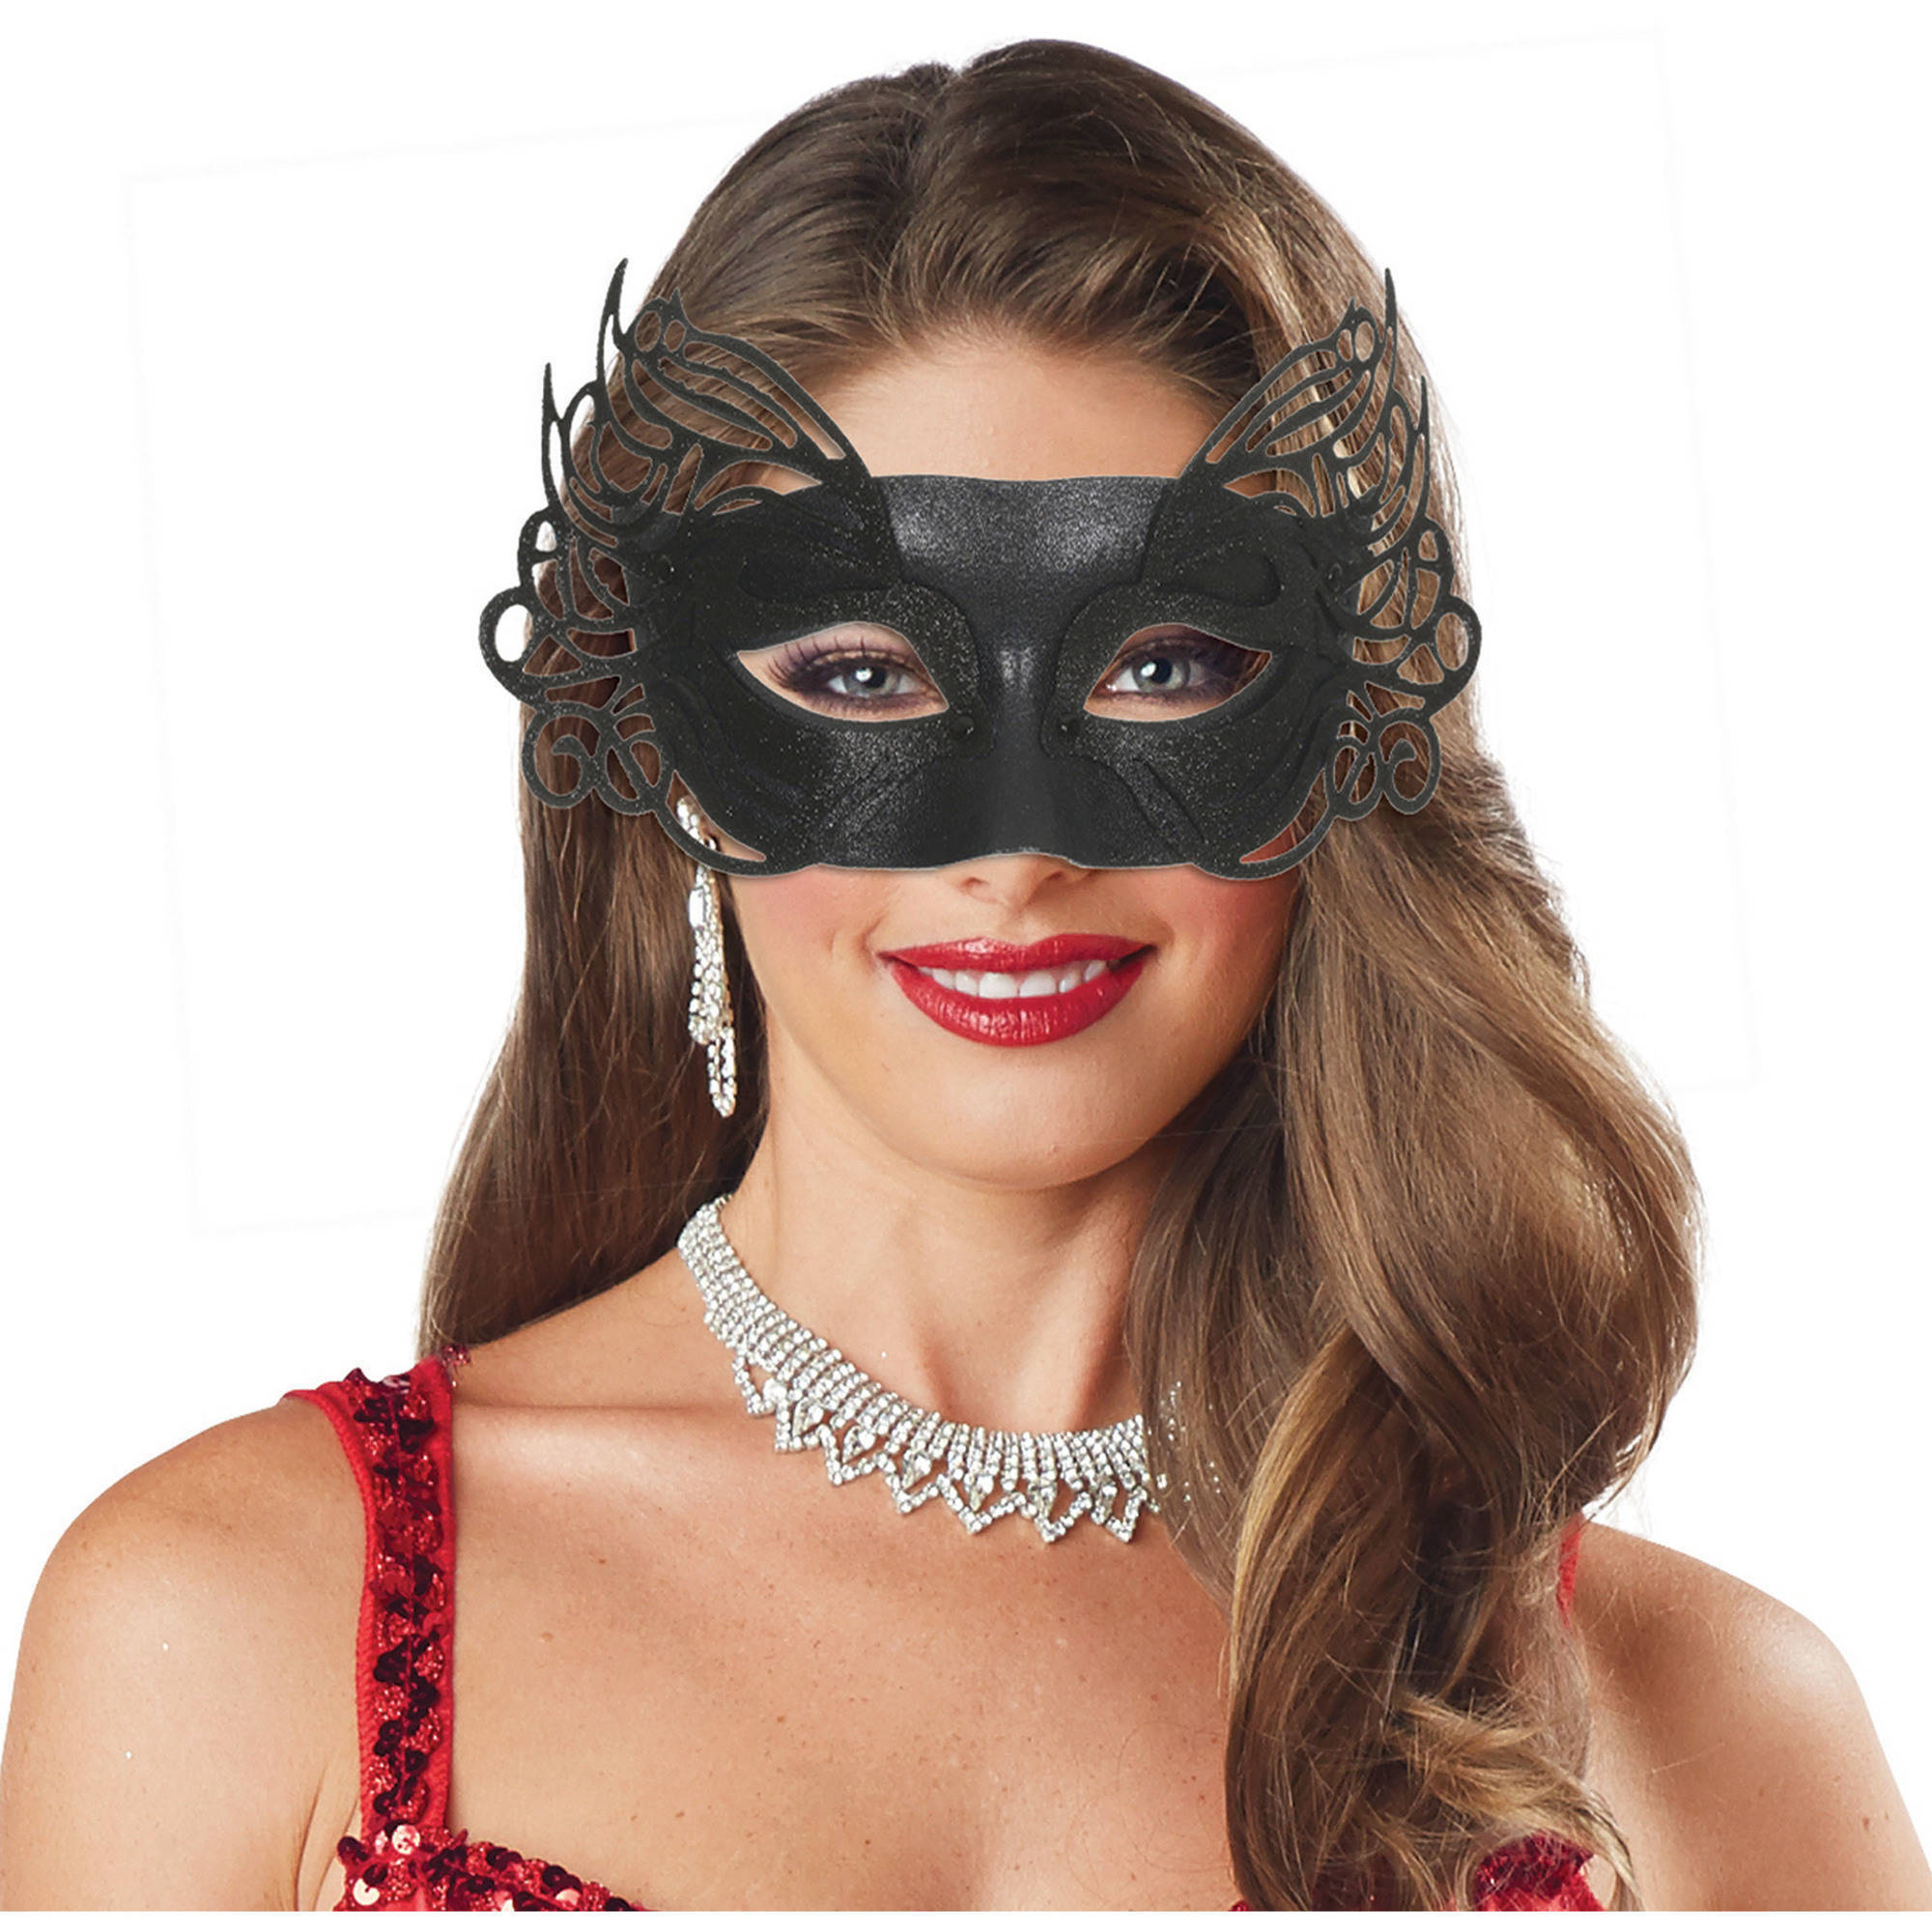 Winged Laser Masquerade Mask Adult Halloween Costume Accessory